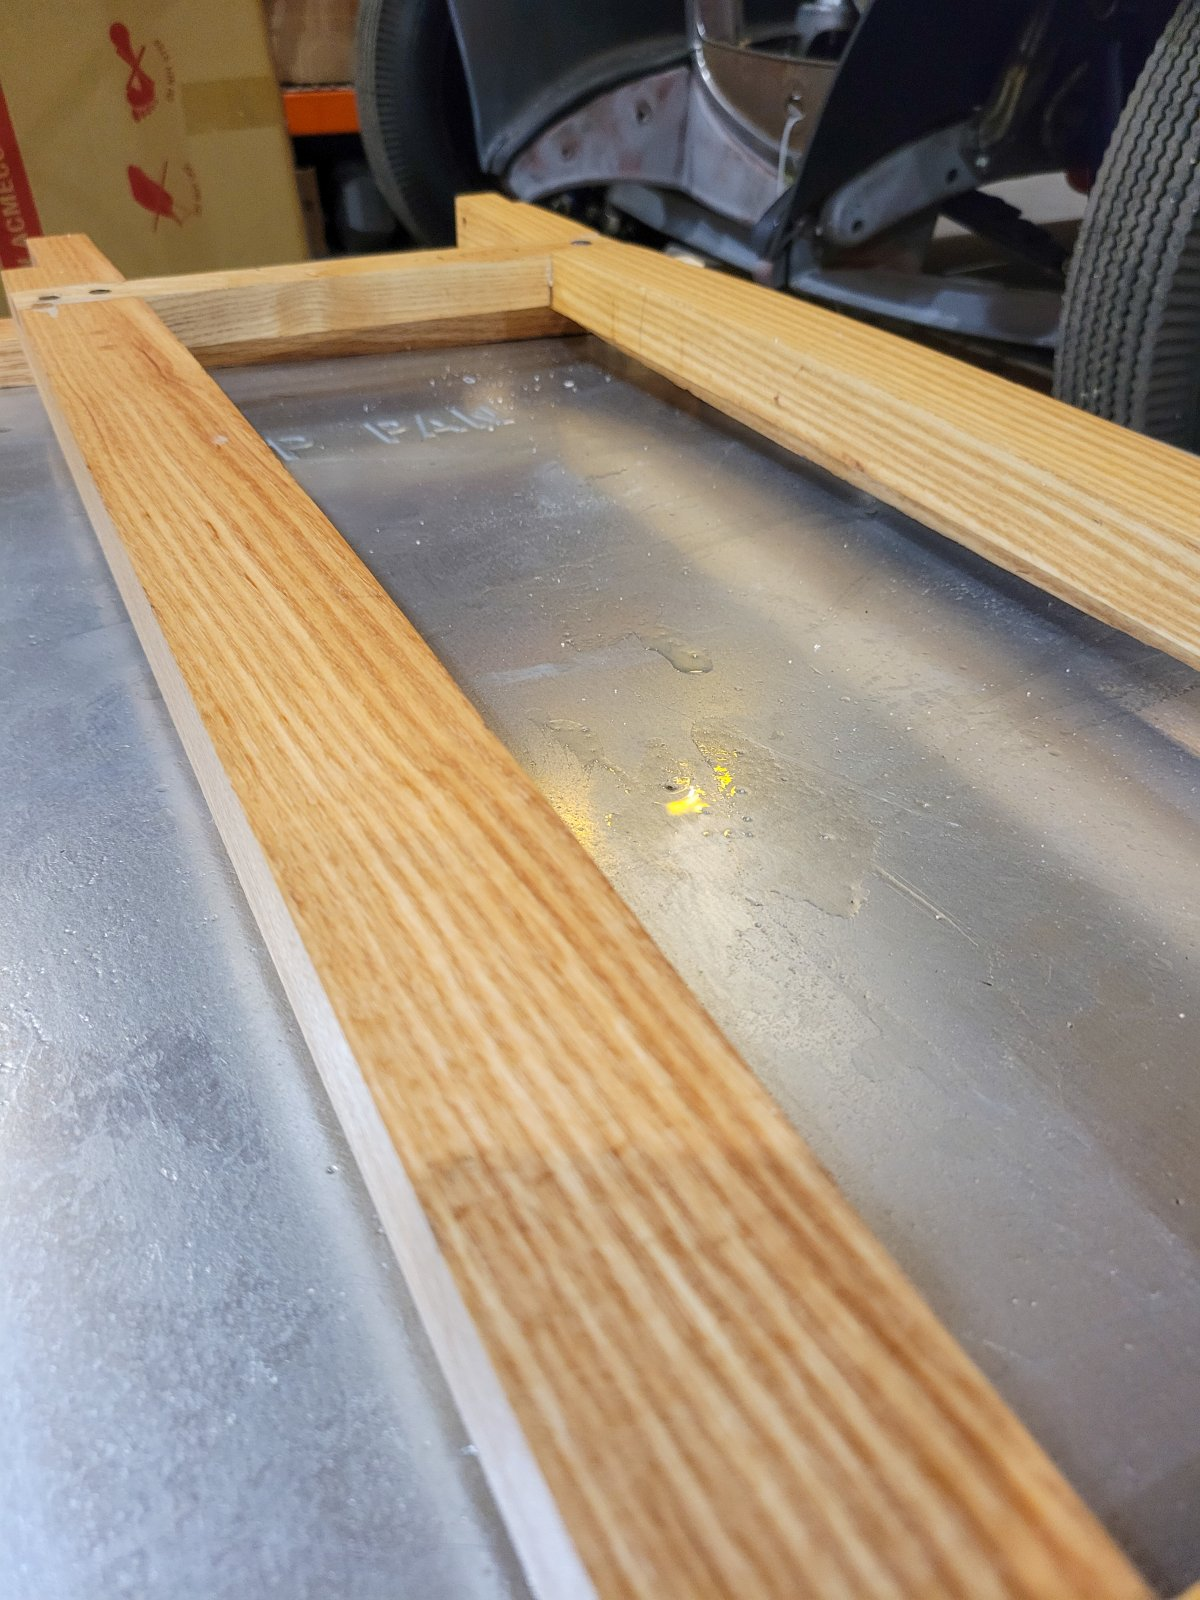 Tung Oil and Turpentine Coat on Model A Wood.jpg